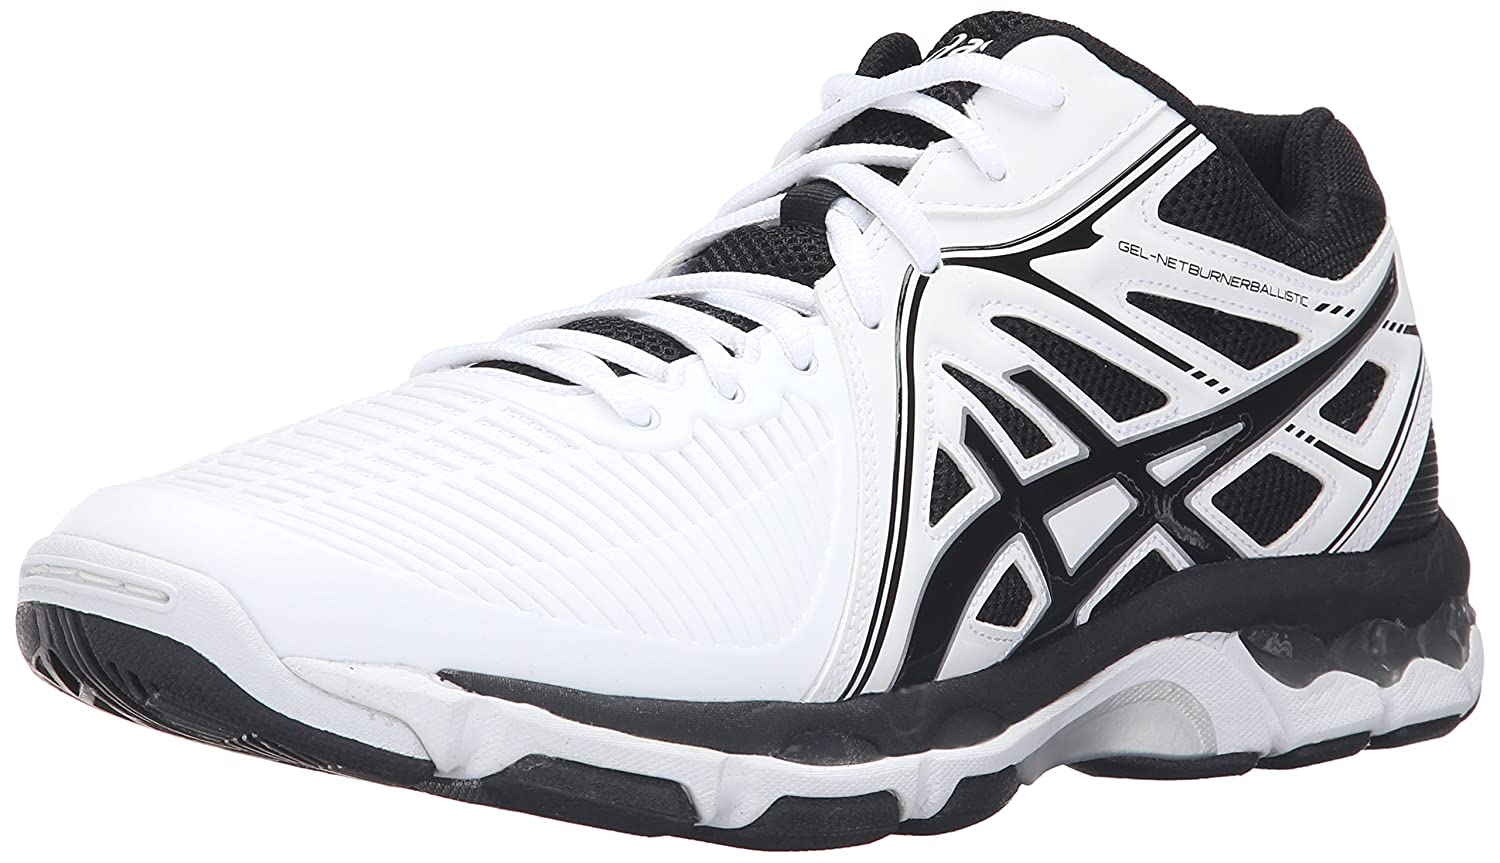 ASICS Men's Gel-Netburner Ballistic MT Volleyball Shoe ASICS America Corporation GEL-Netburner Ballistic MT-M